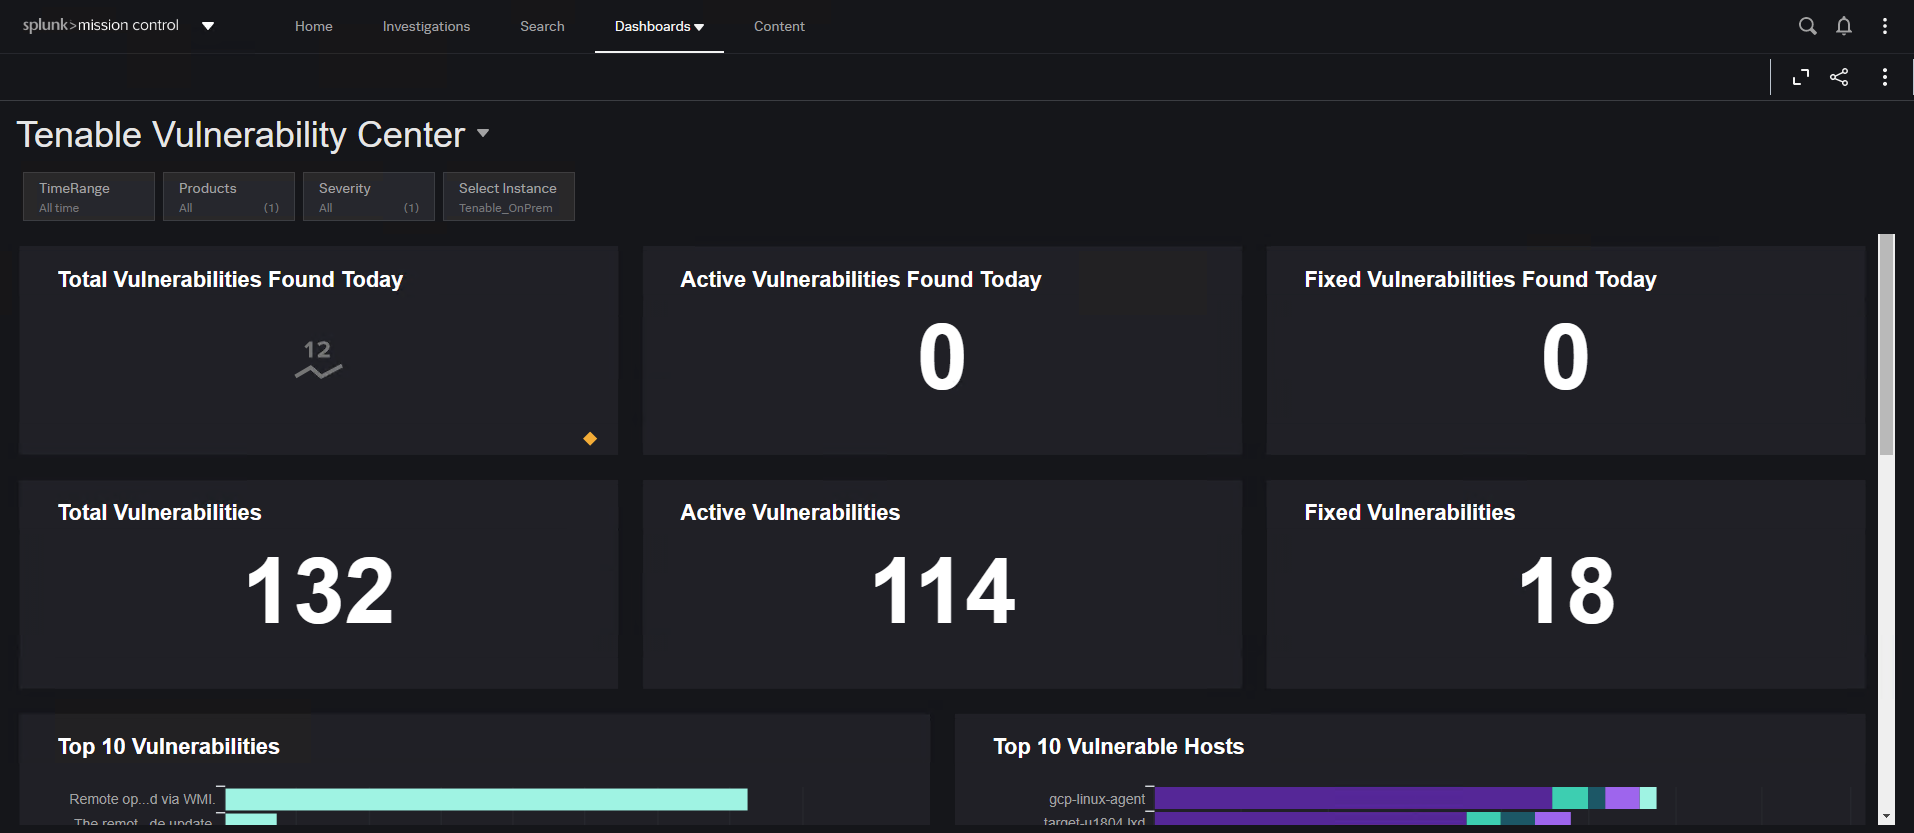 Screenshot of the Tenable Vulnerability Center within the Splunk Mission Control dashboard.